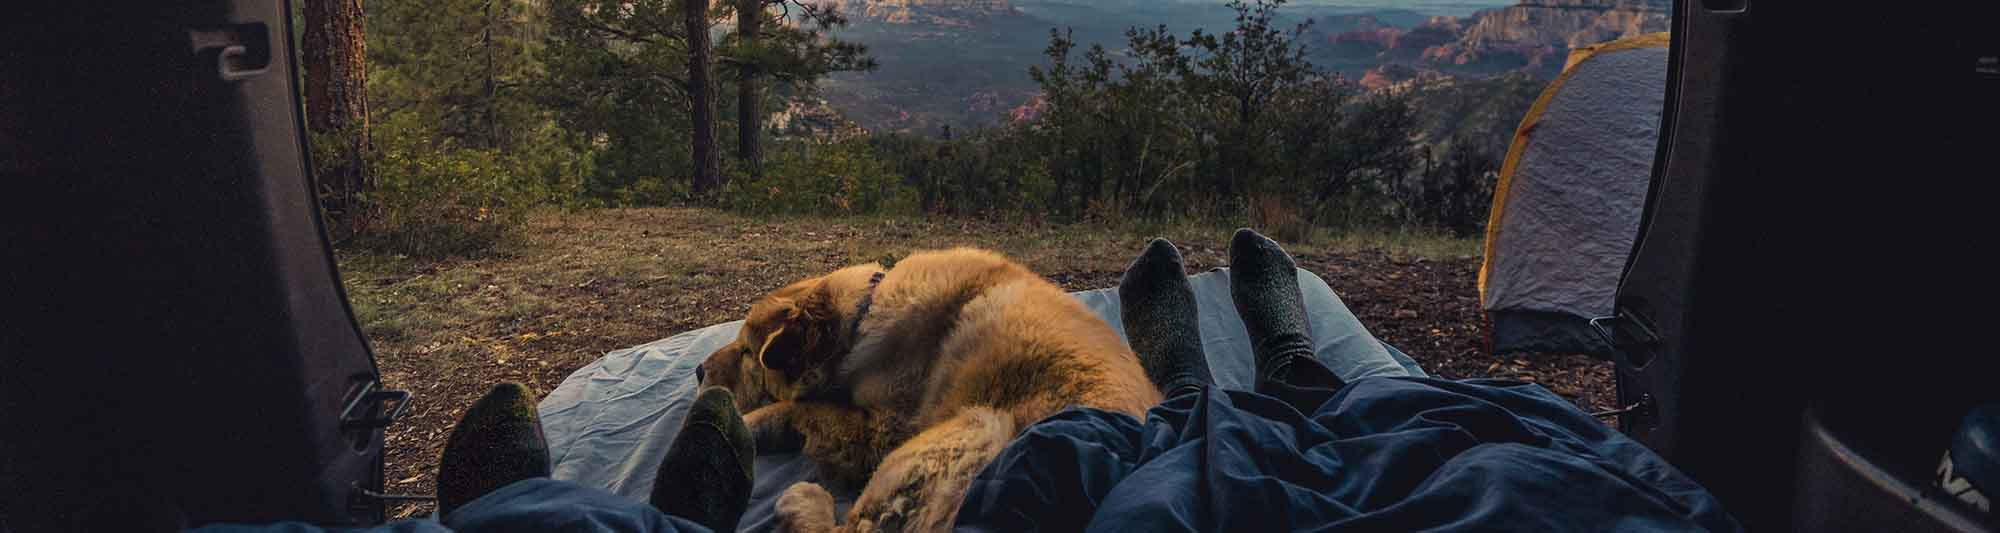 camping with a dog in the mountains